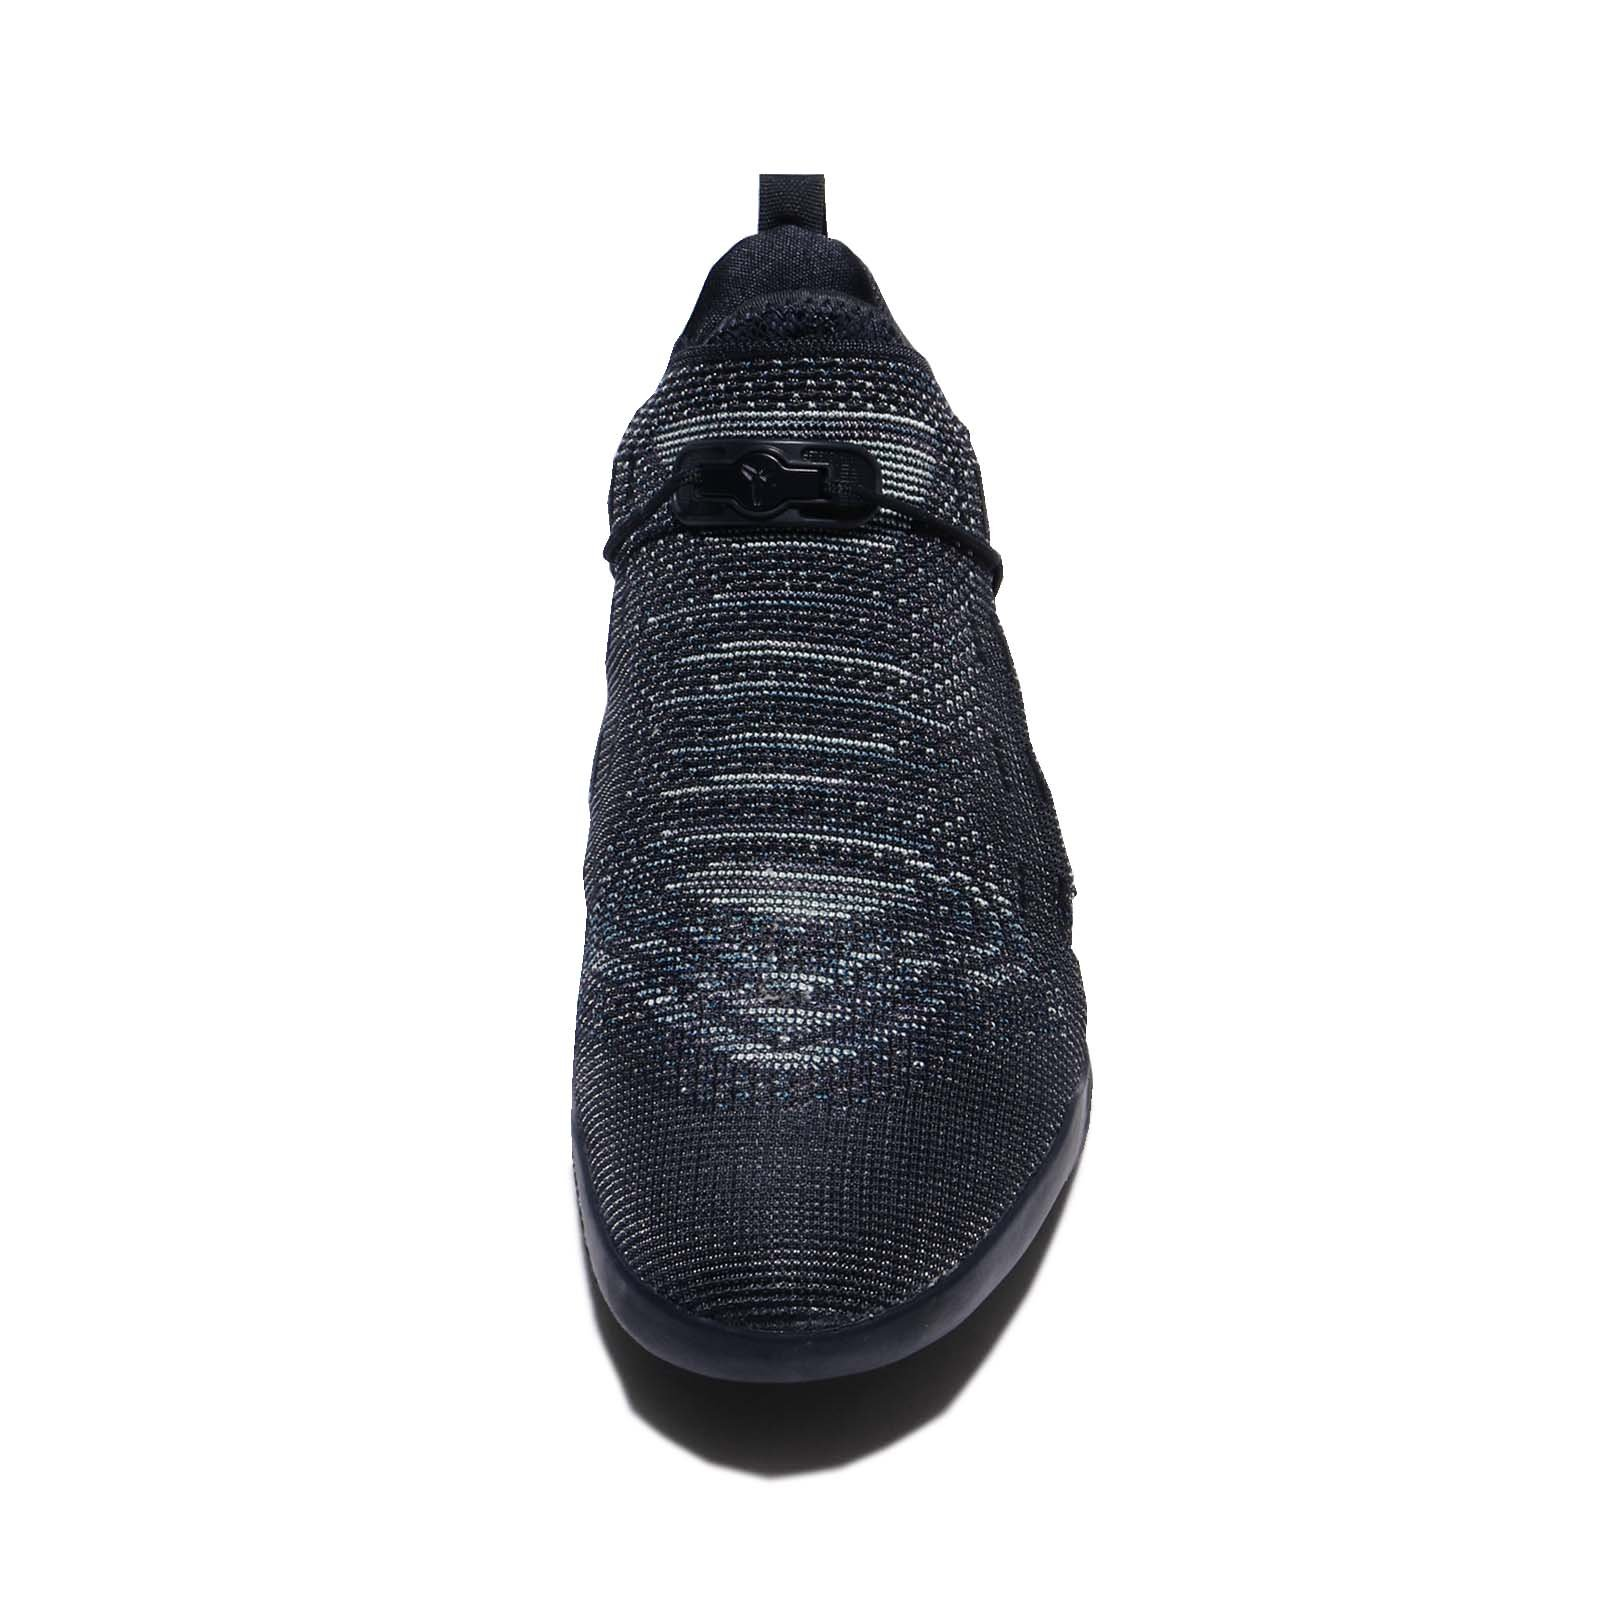 Nike Men's Kobe A.D. NXT AD, Mambacurial FC Barcelona College Navy Igloo, 9.5 M US by NIKE (Image #5)